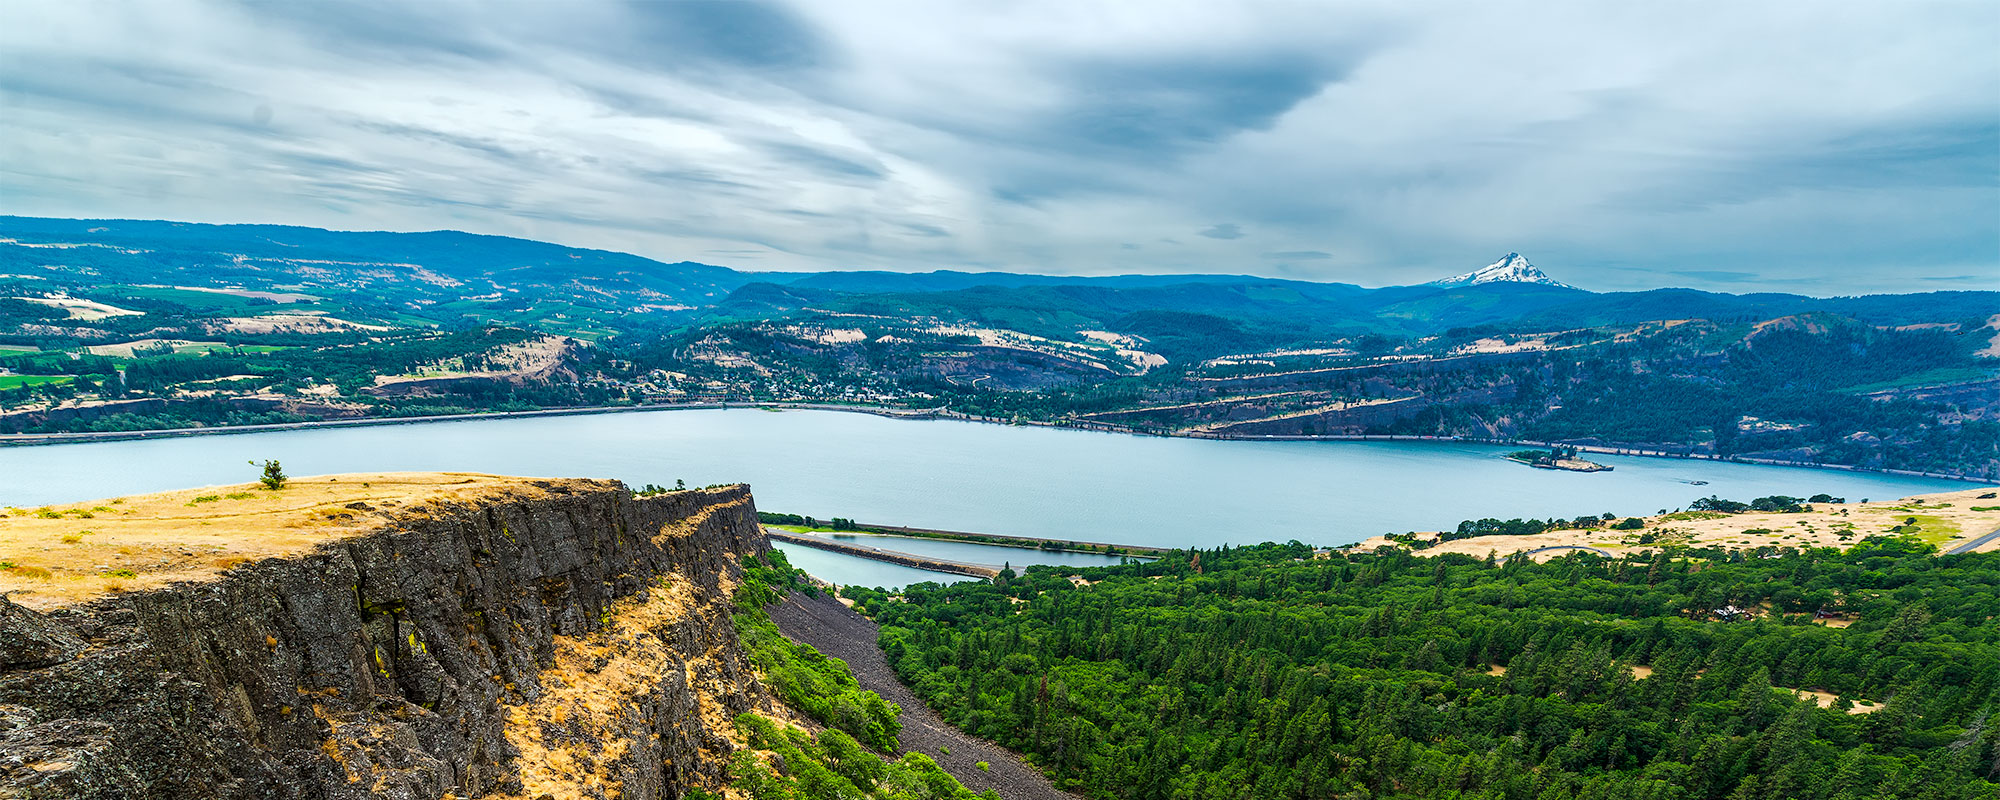 Gorge Office Detail serving the Columbia River Gorge, Hood River, Parkdale, Mosier, The Dalles, Bingen, White Salmon